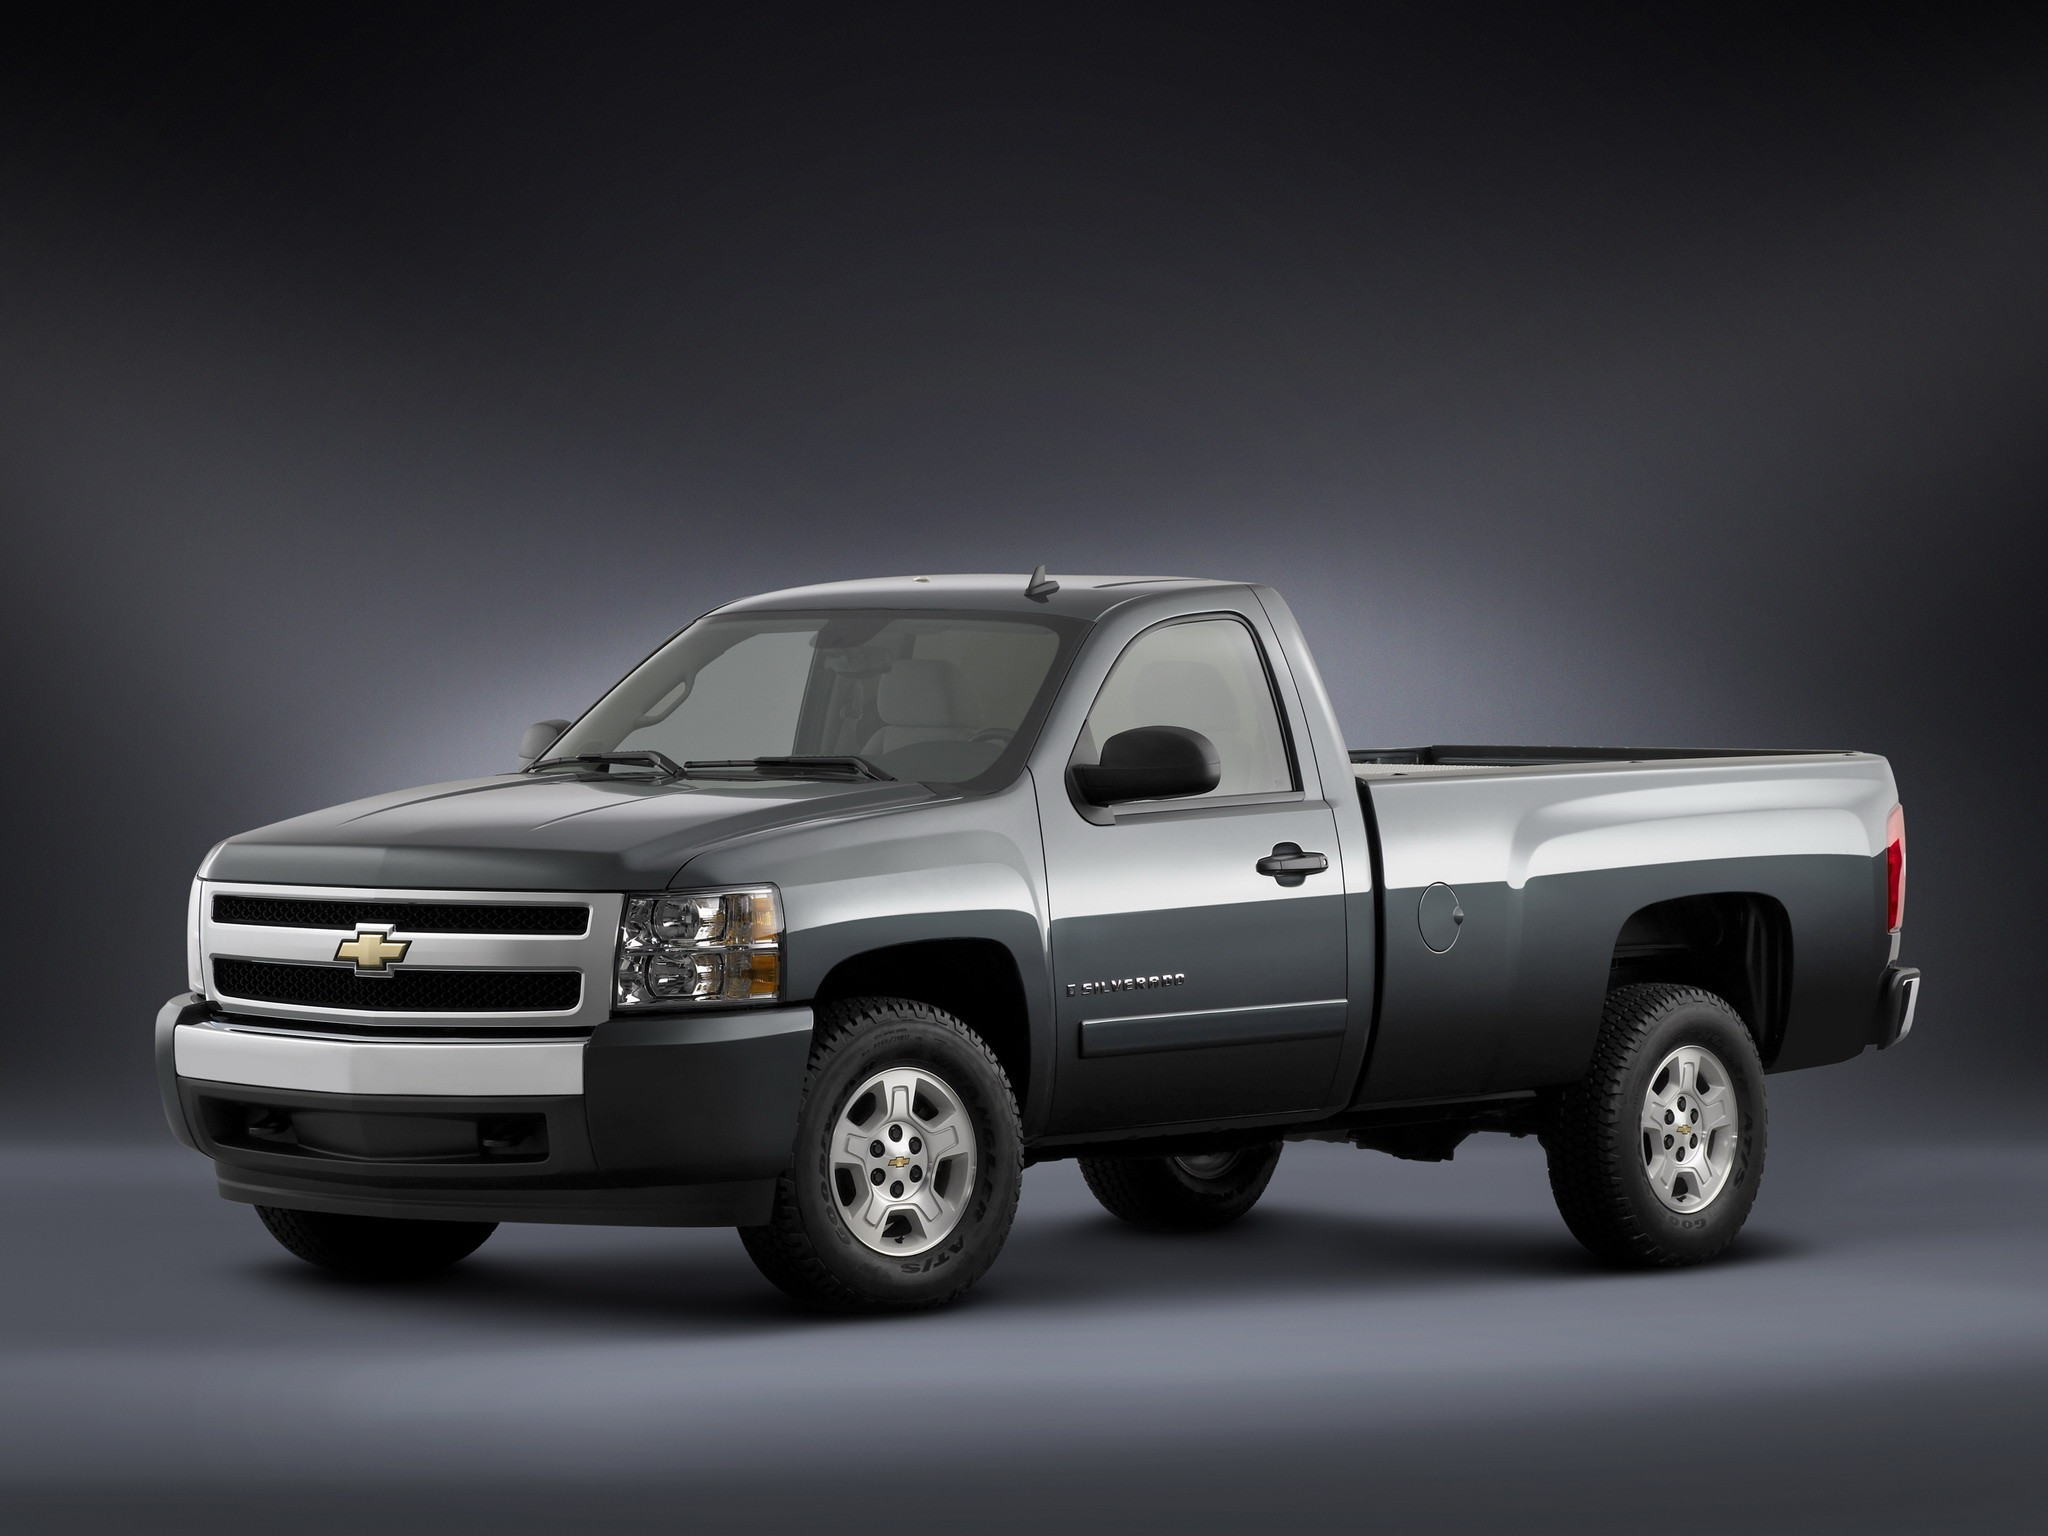 CHEVROLET Silverado 1500 Regular Cab specs & photos - 2008 ...